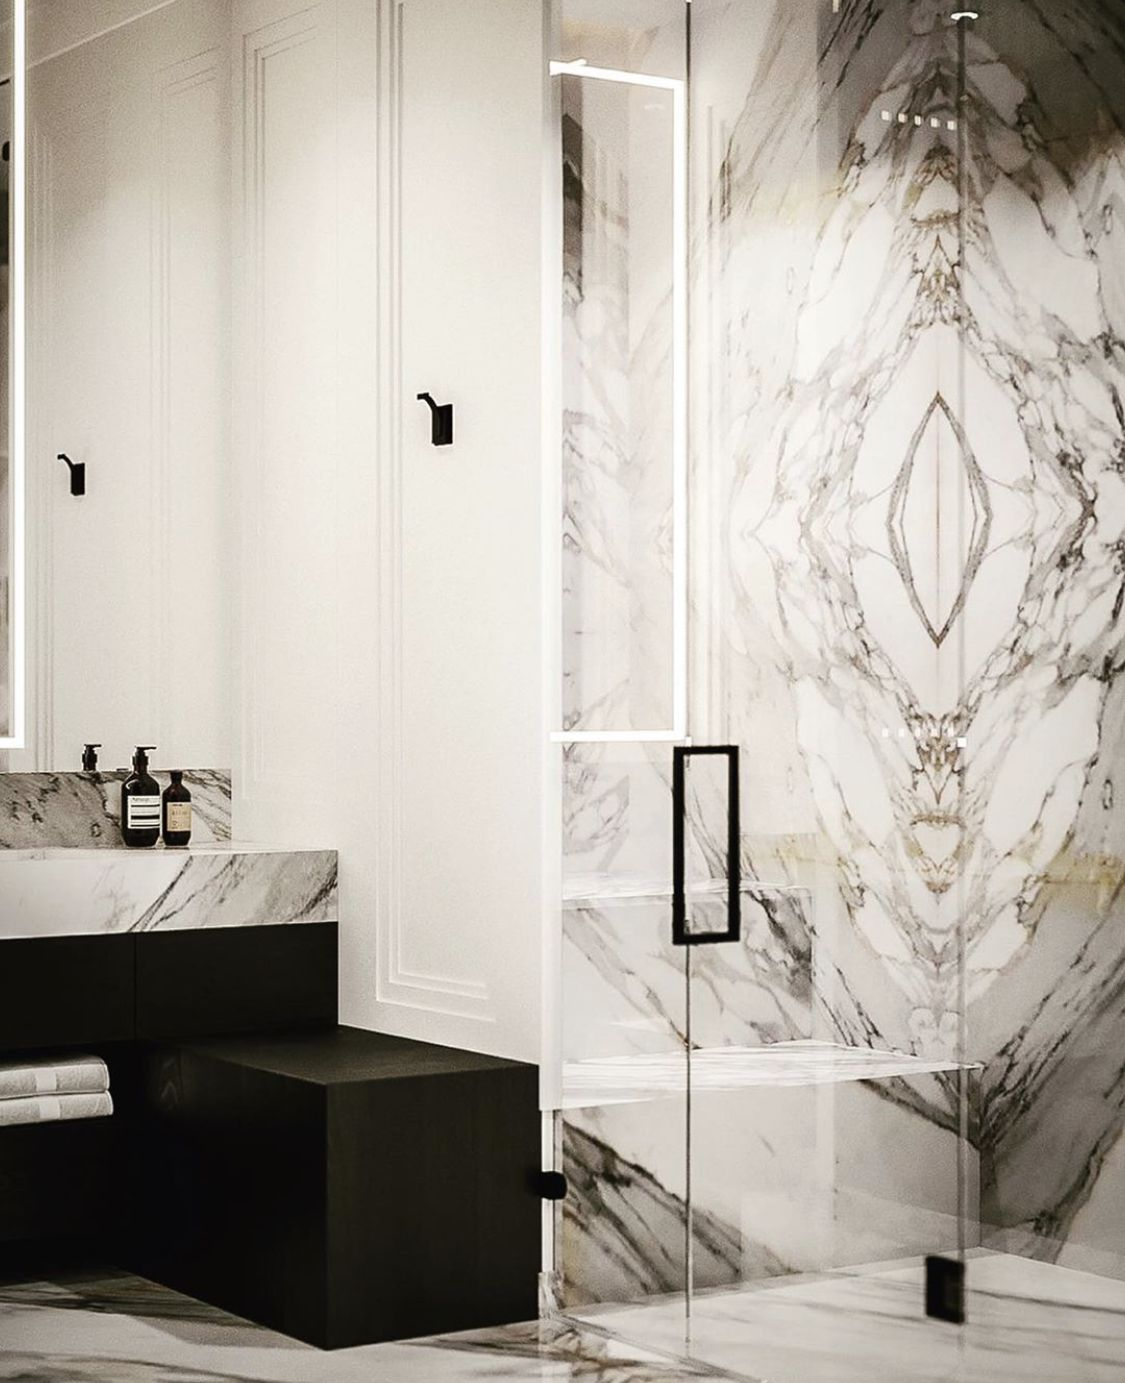 Images from a recently completed project in Copenhagen. Shower wall was bookmatched using Calacatta Borghini Gold Marble and the outcome is amazing 🙌 • • • #calacattamarble #calacattagold #calacattaborghini #calacatta #calacata #carraramarble #marmor #marble #bathroomdesign #badrum #marbleshower #interior #interiordesign #designer #interiordesigner #archilovers #architect #luxurymarble #marbledesign #homedesign #bathroomdecor #bathroomrenovation #bookmatch #homestyle #instahome #instadesign #mo